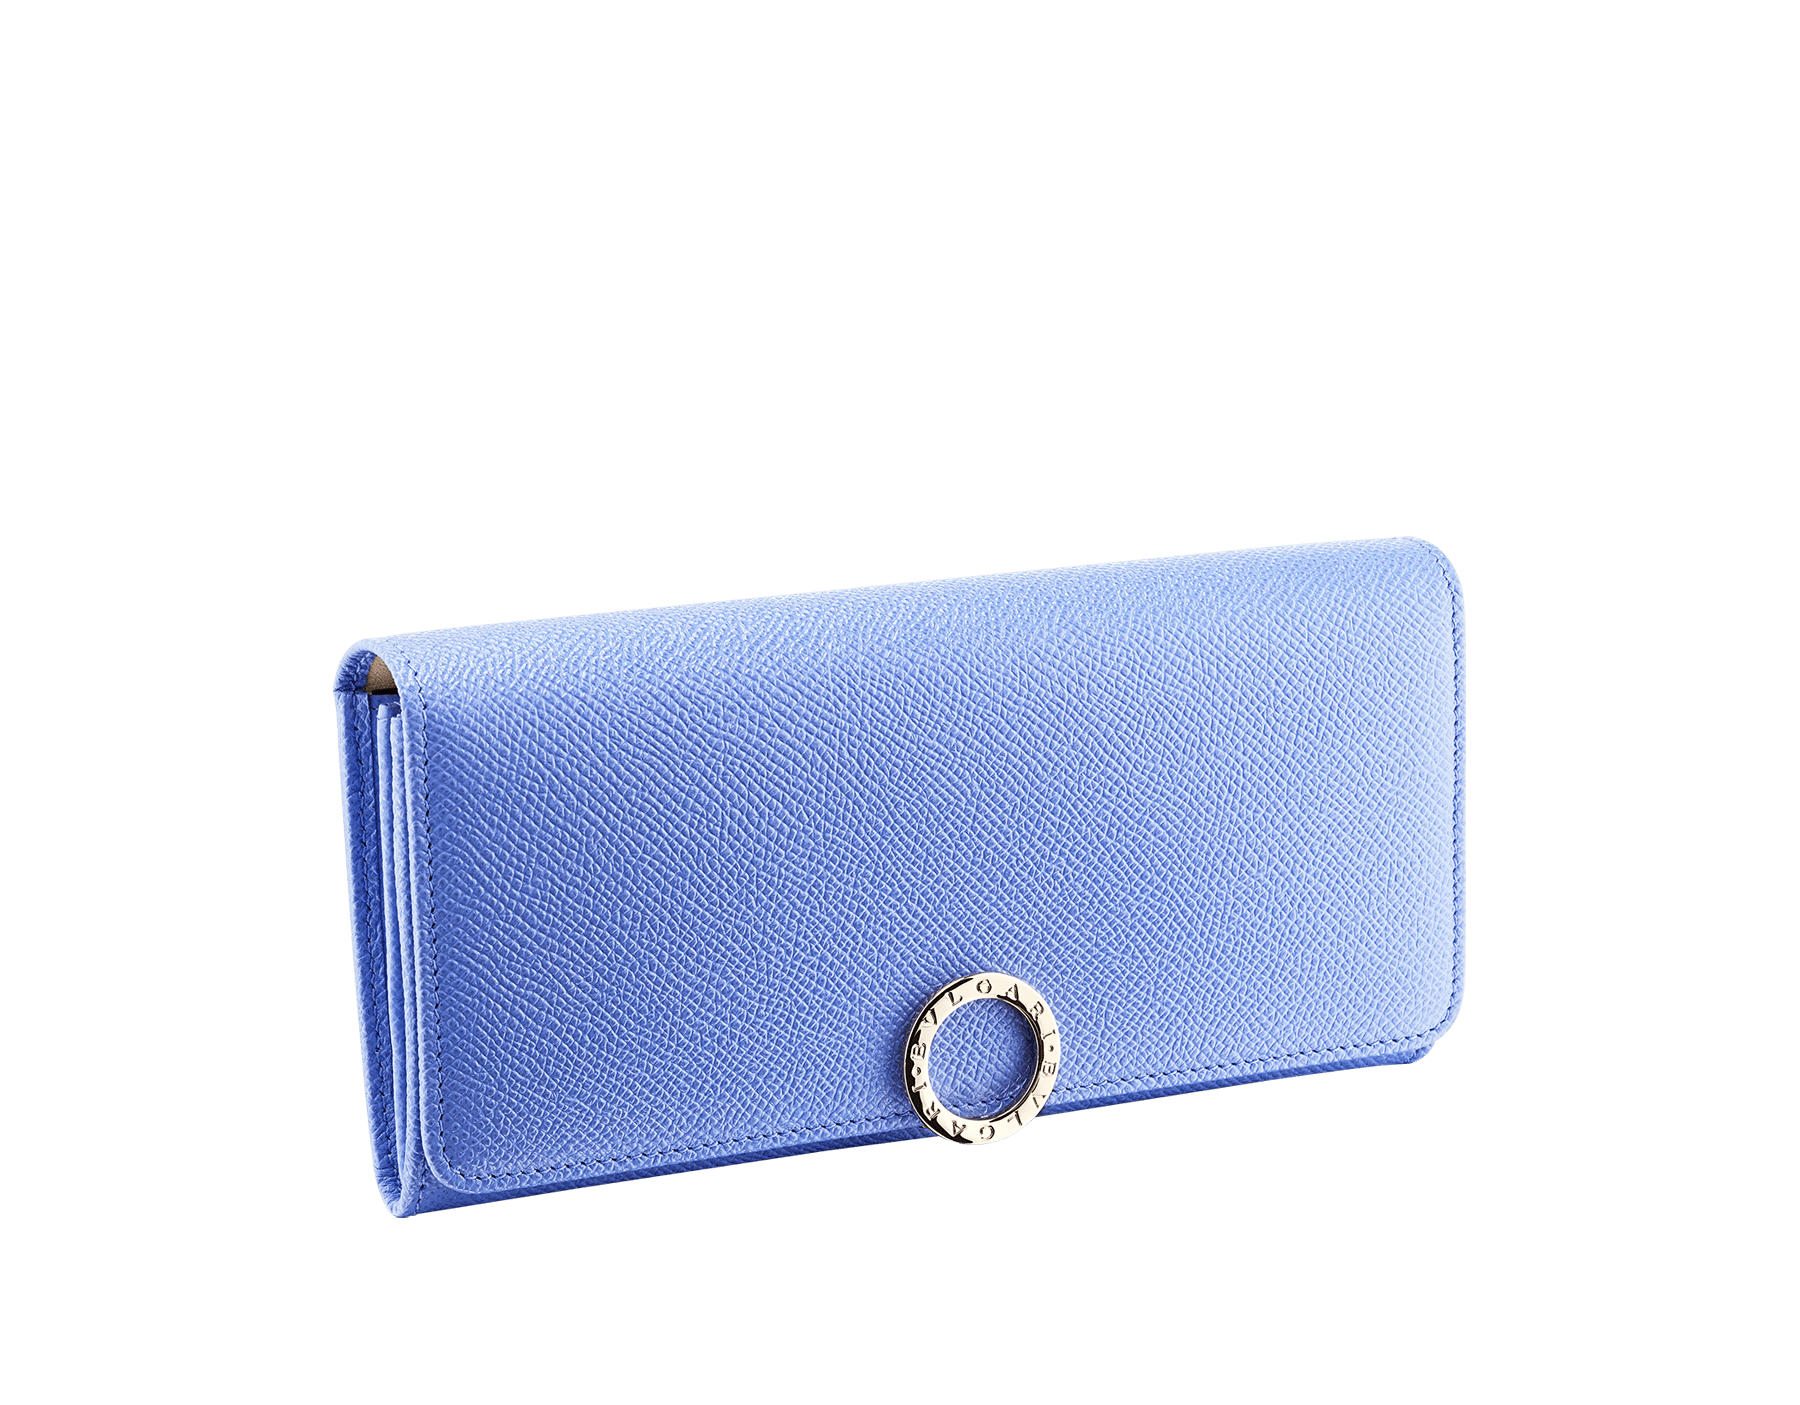 """""""BVLGARI BVLGARI"""" large wallet in Lavender Amethyst bright lilac grained calf leather and peach nappa leather. Iconic logo clip closure in light gold-plated brass. 579-WLT-SLI-POC-CLd image 1"""